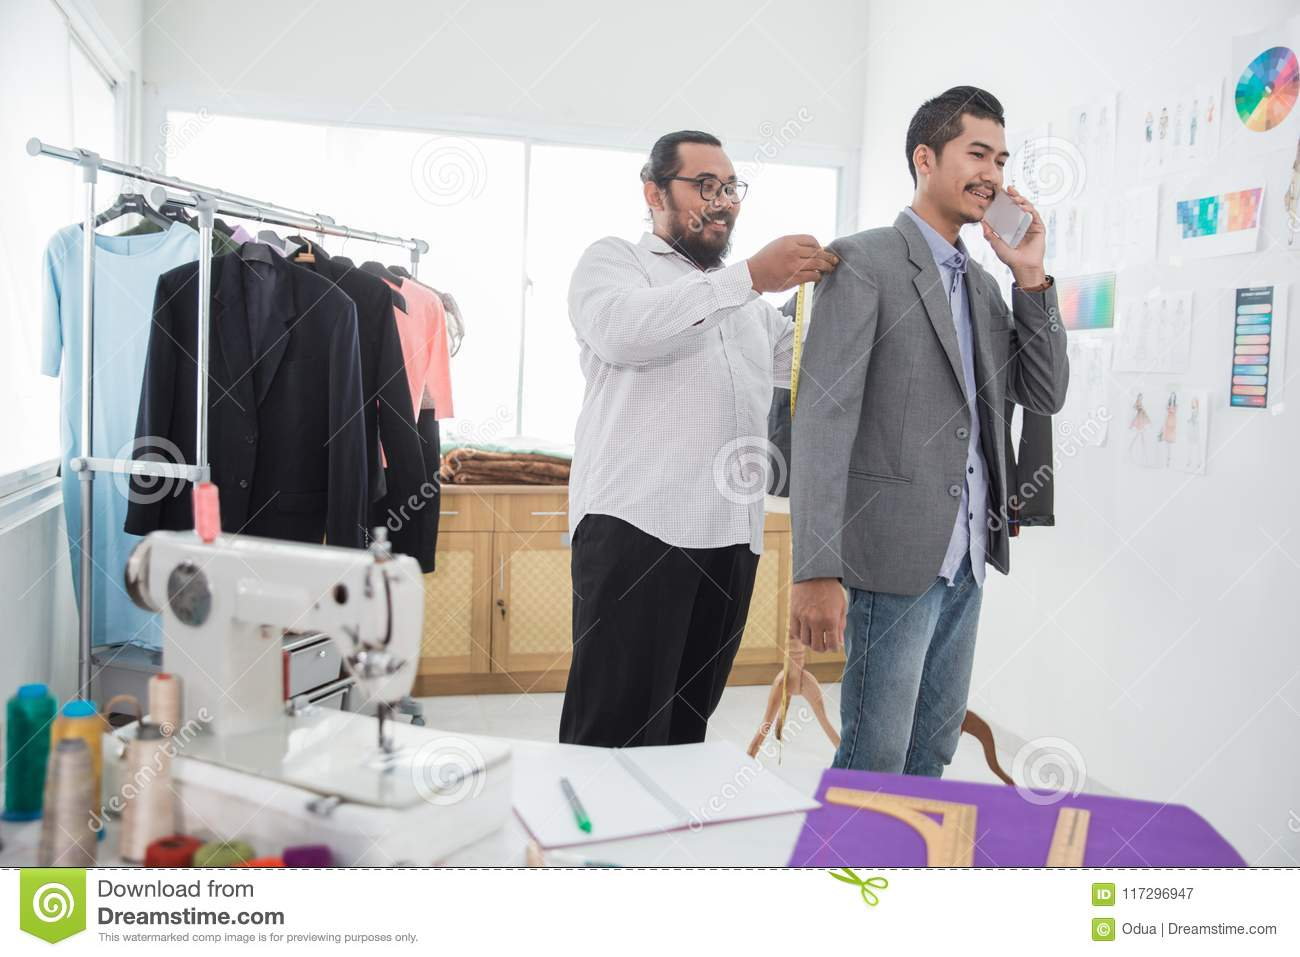 Male Fashion Designer Take A Measure For Clothing Stock Image Image Of Tailor Garment 117296947